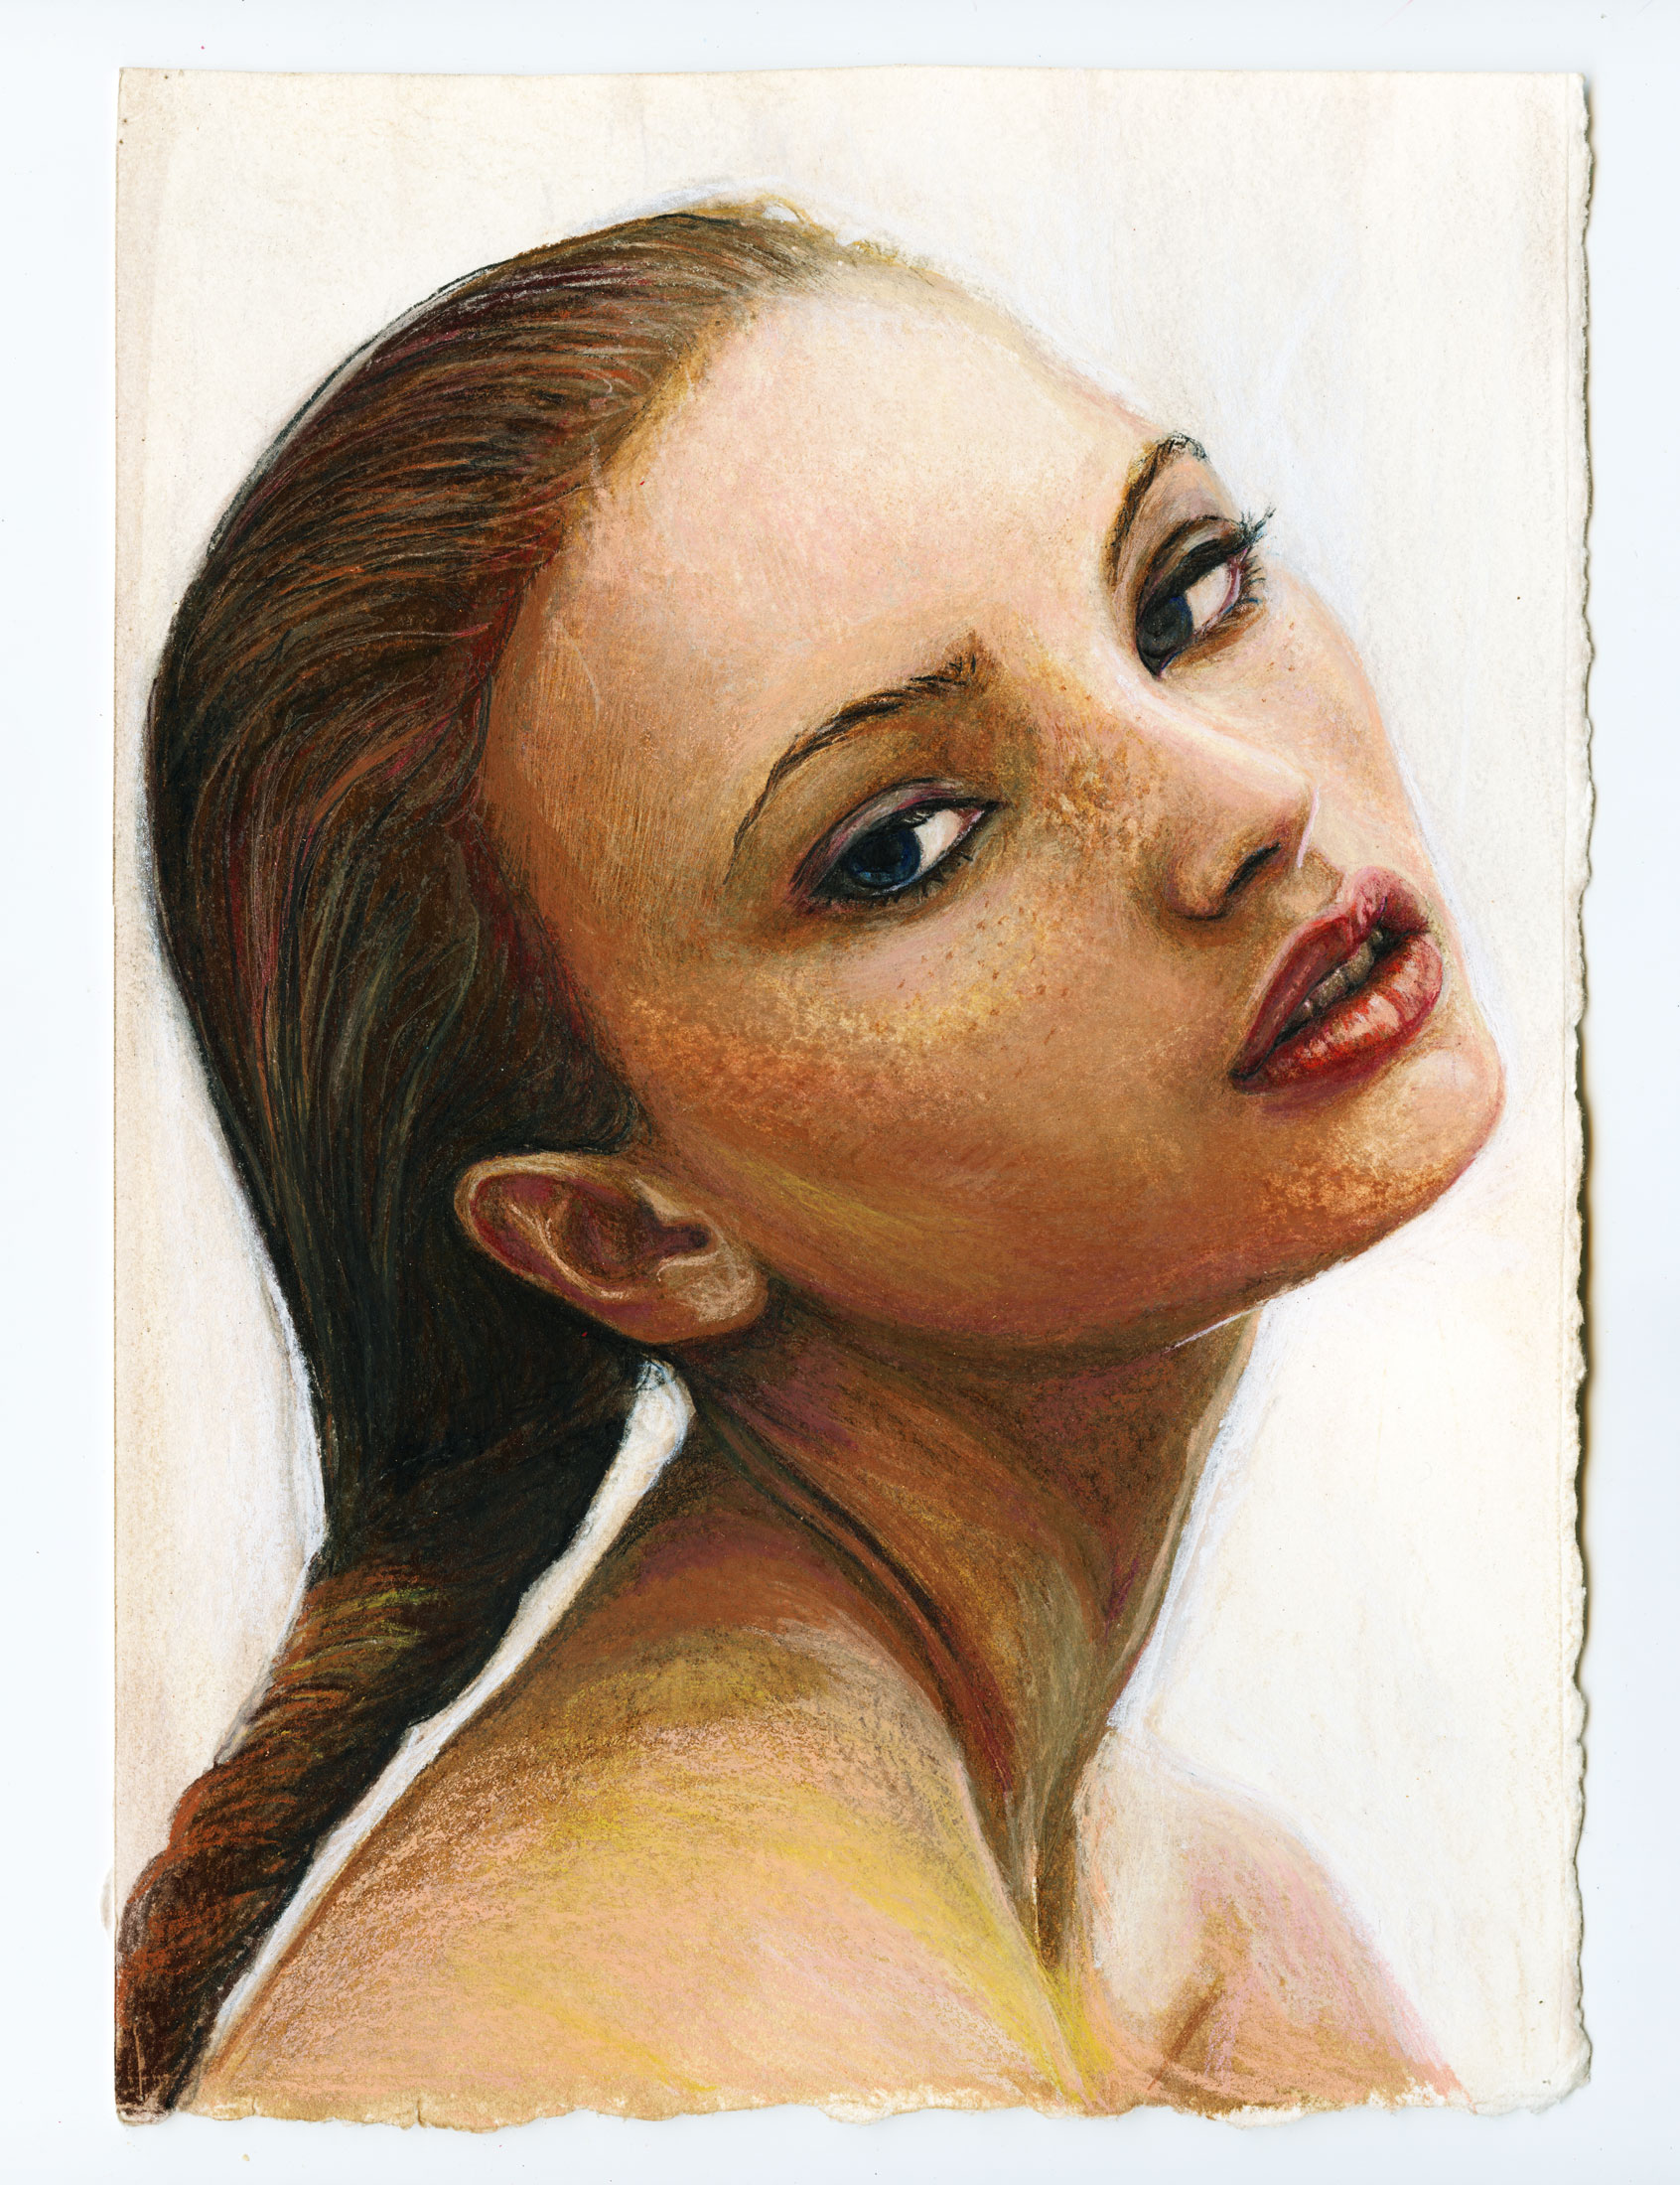 Artist Danny Roberts Light and Color study of Swedish model Mona Johannesson Color pencil Portrait